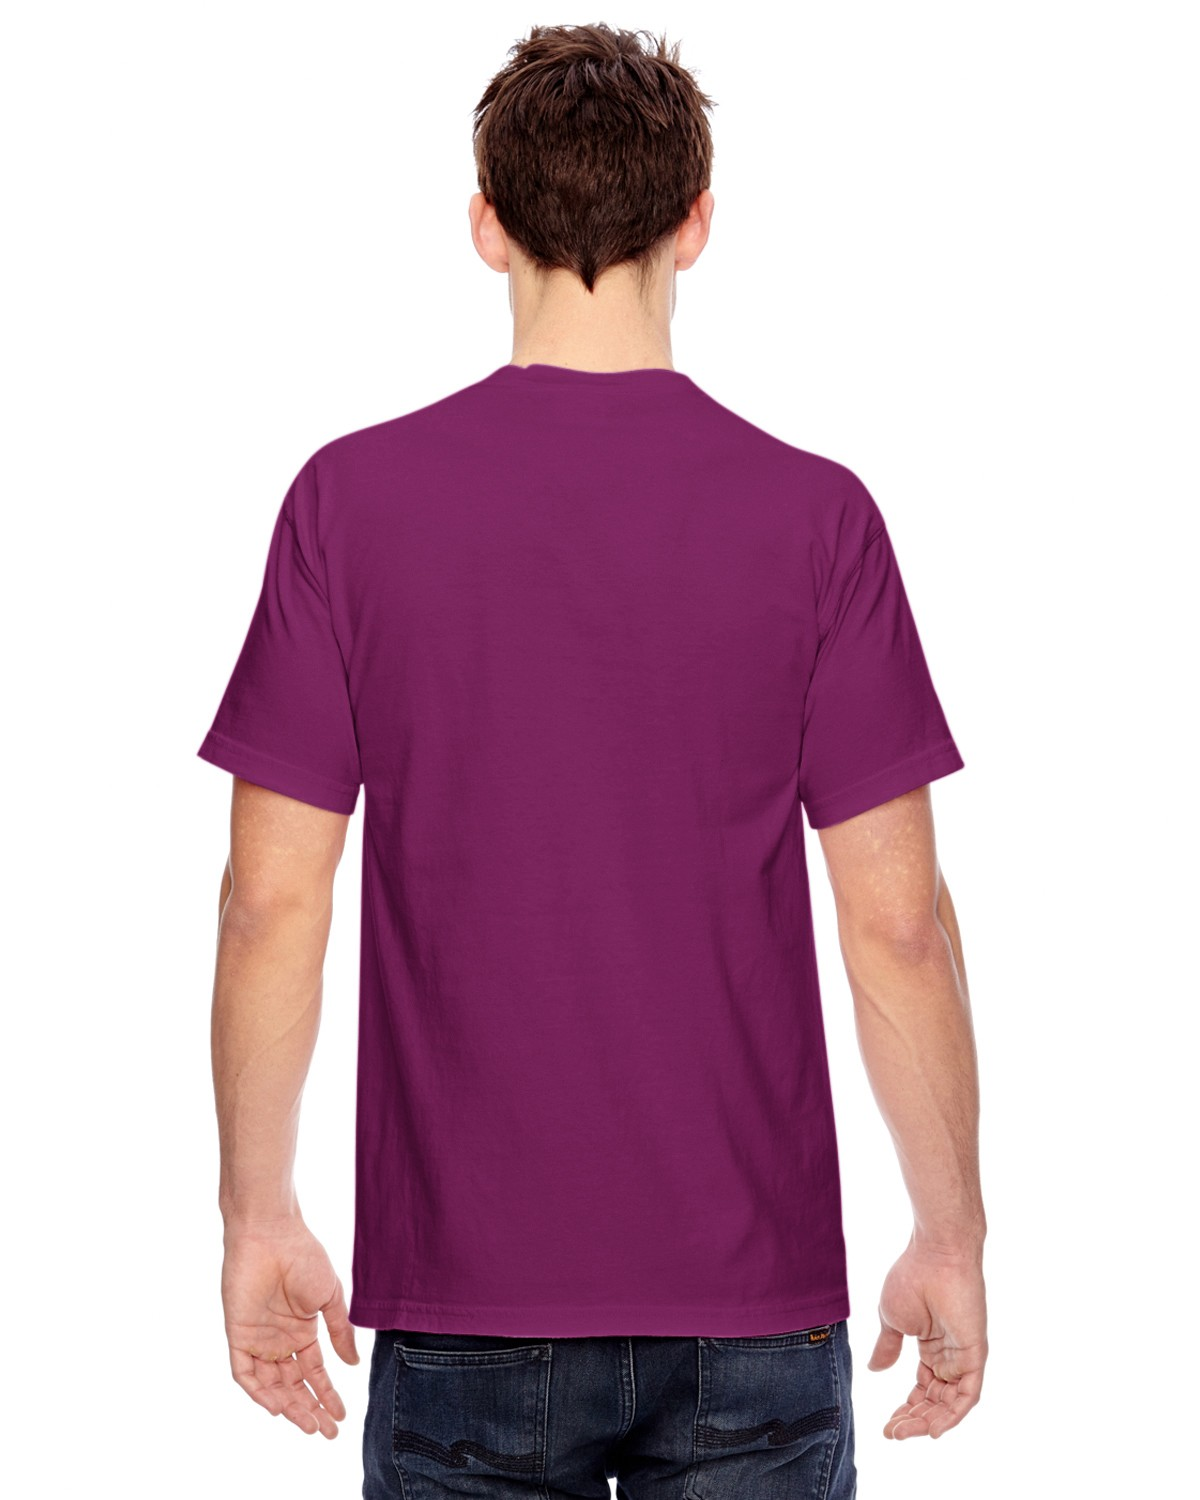 C1717 Comfort Colors BOYSENBERRY